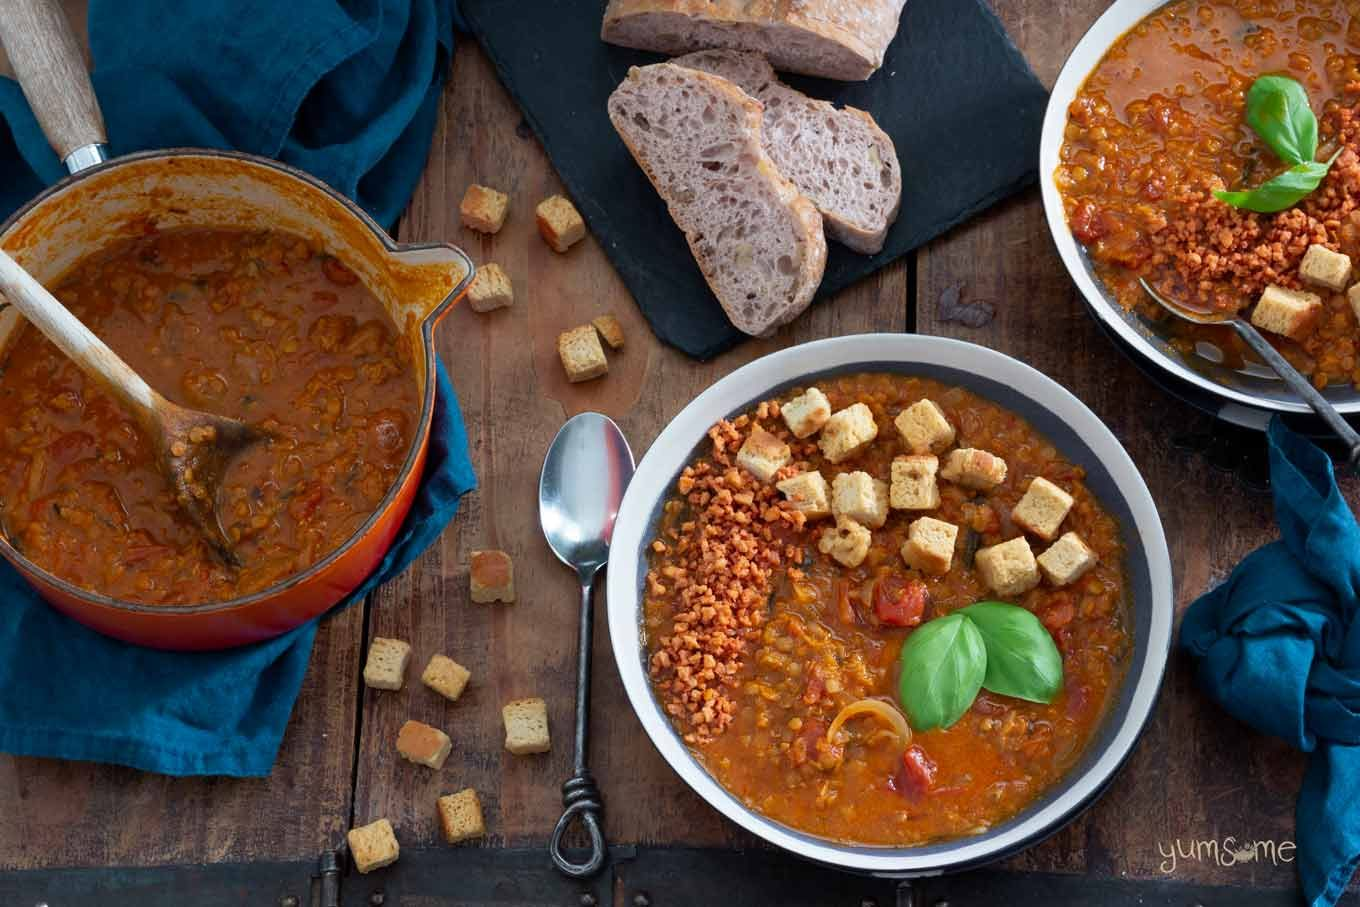 Several bowls and a pan of crockpot tomato lentil soup, plus bread and croutons on a wooden table.